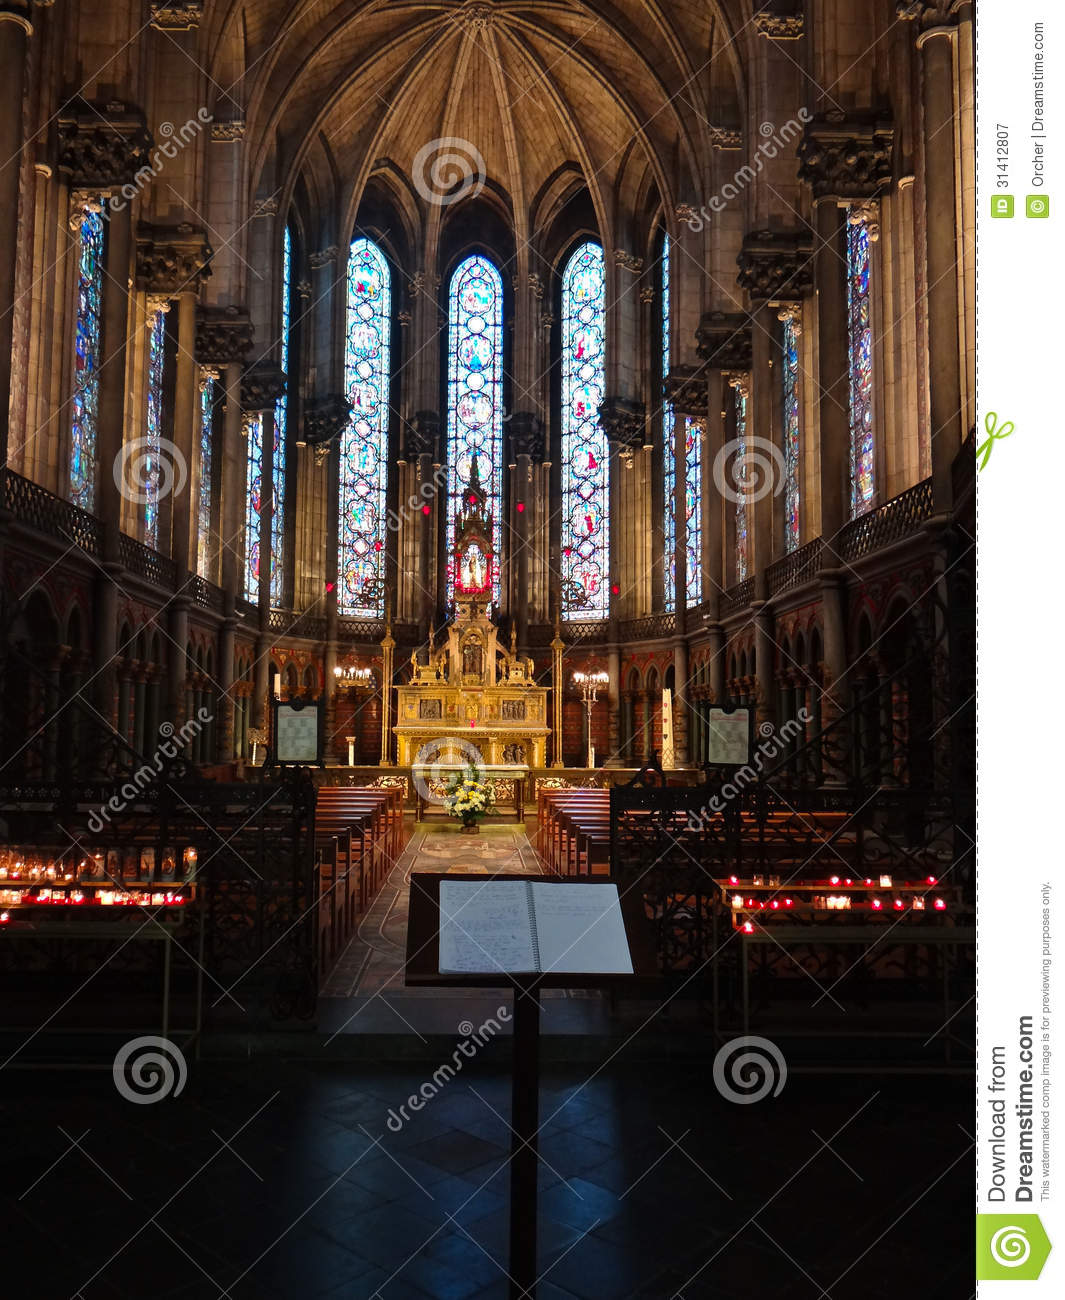 rouen cathedral royalty free stock photography image 31412807. Black Bedroom Furniture Sets. Home Design Ideas